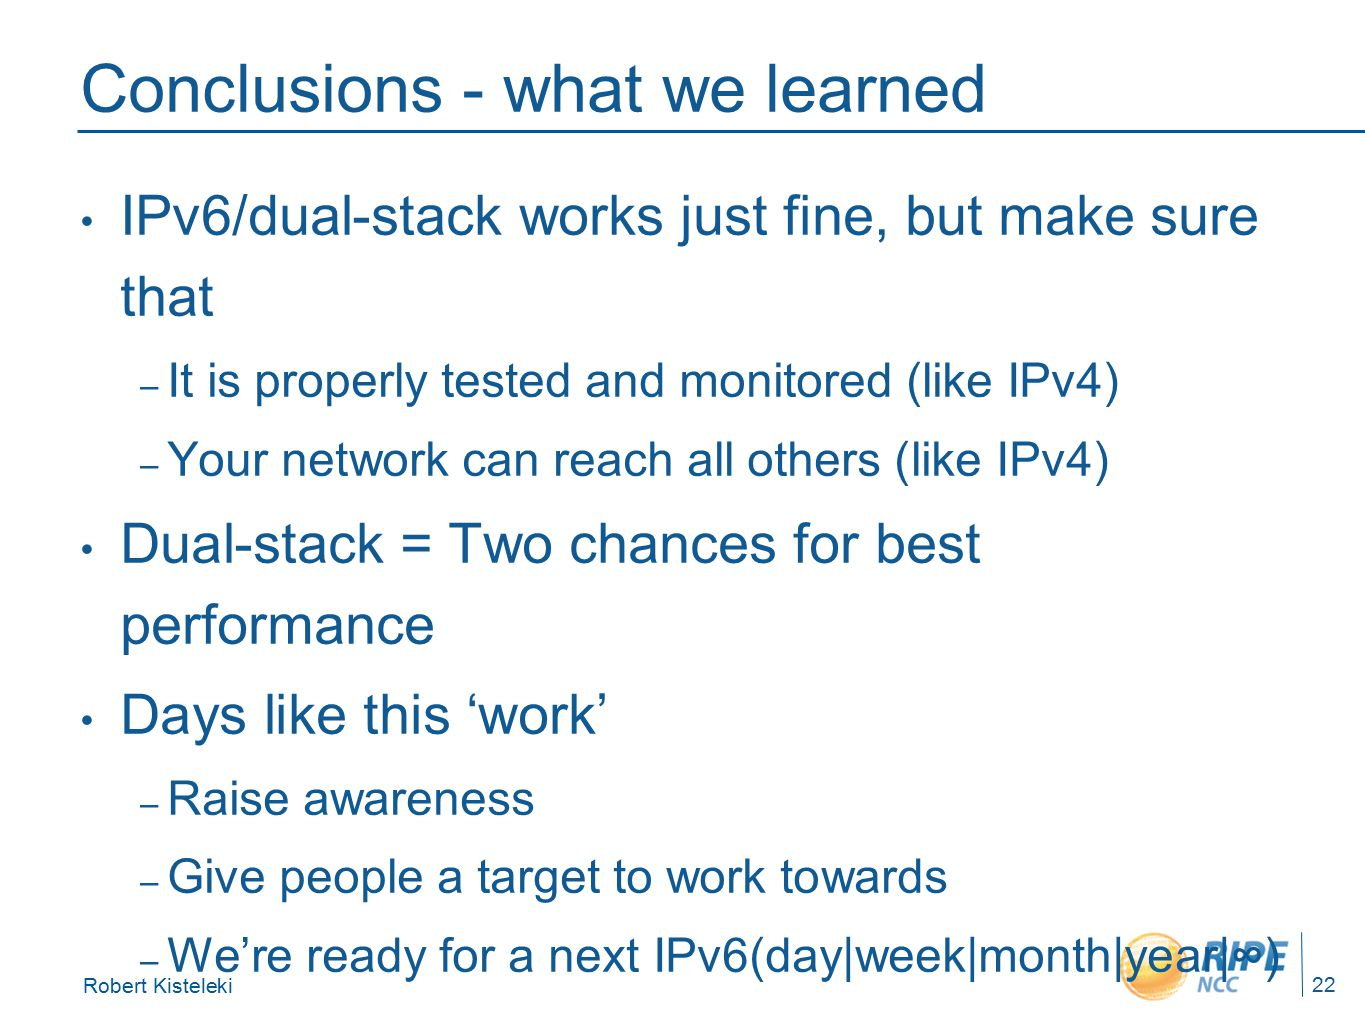 Robert Kisteleki 22 Conclusions - what we learned IPv6/dual-stack works just fine, but make sure that – It is properly tested and monitored (like IPv4) – Your network can reach all others (like IPv4) Dual-stack = Two chances for best performance Days like this 'work' – Raise awareness – Give people a target to work towards – We're ready for a next IPv6(day|week|month|year|∞)